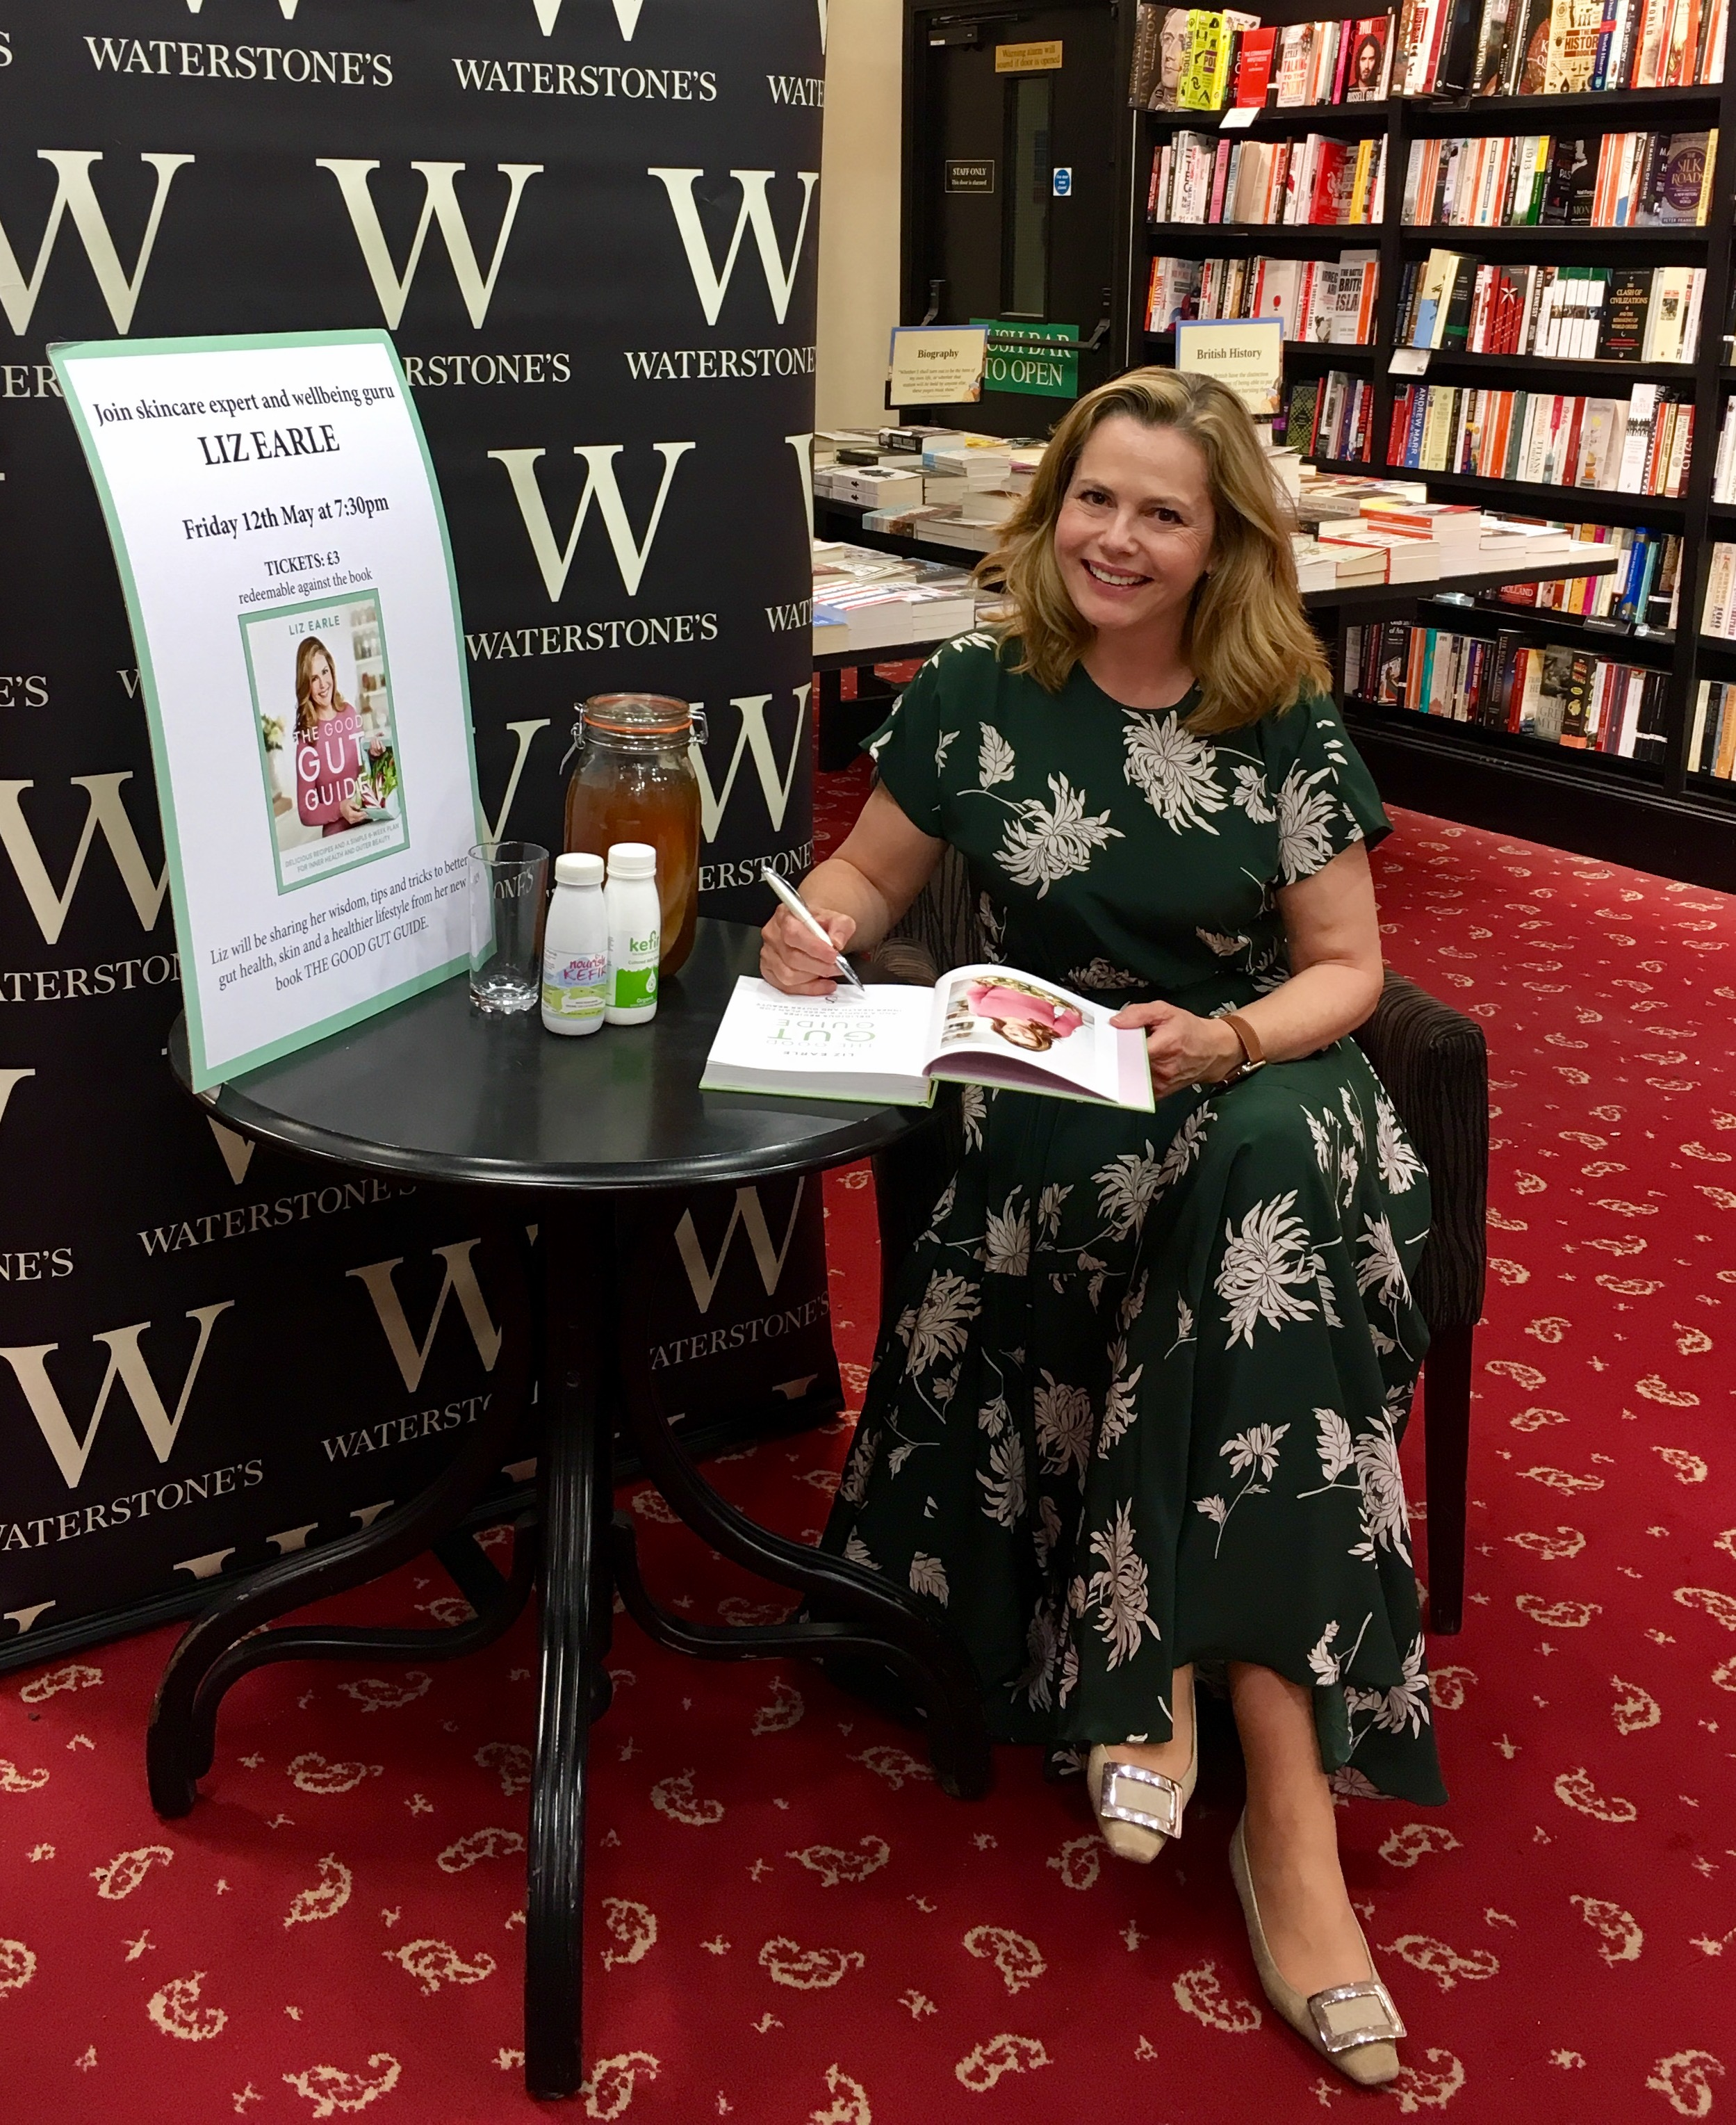 Book signing Waterstones The Good Gut Guide Liz Earle Wellbeing